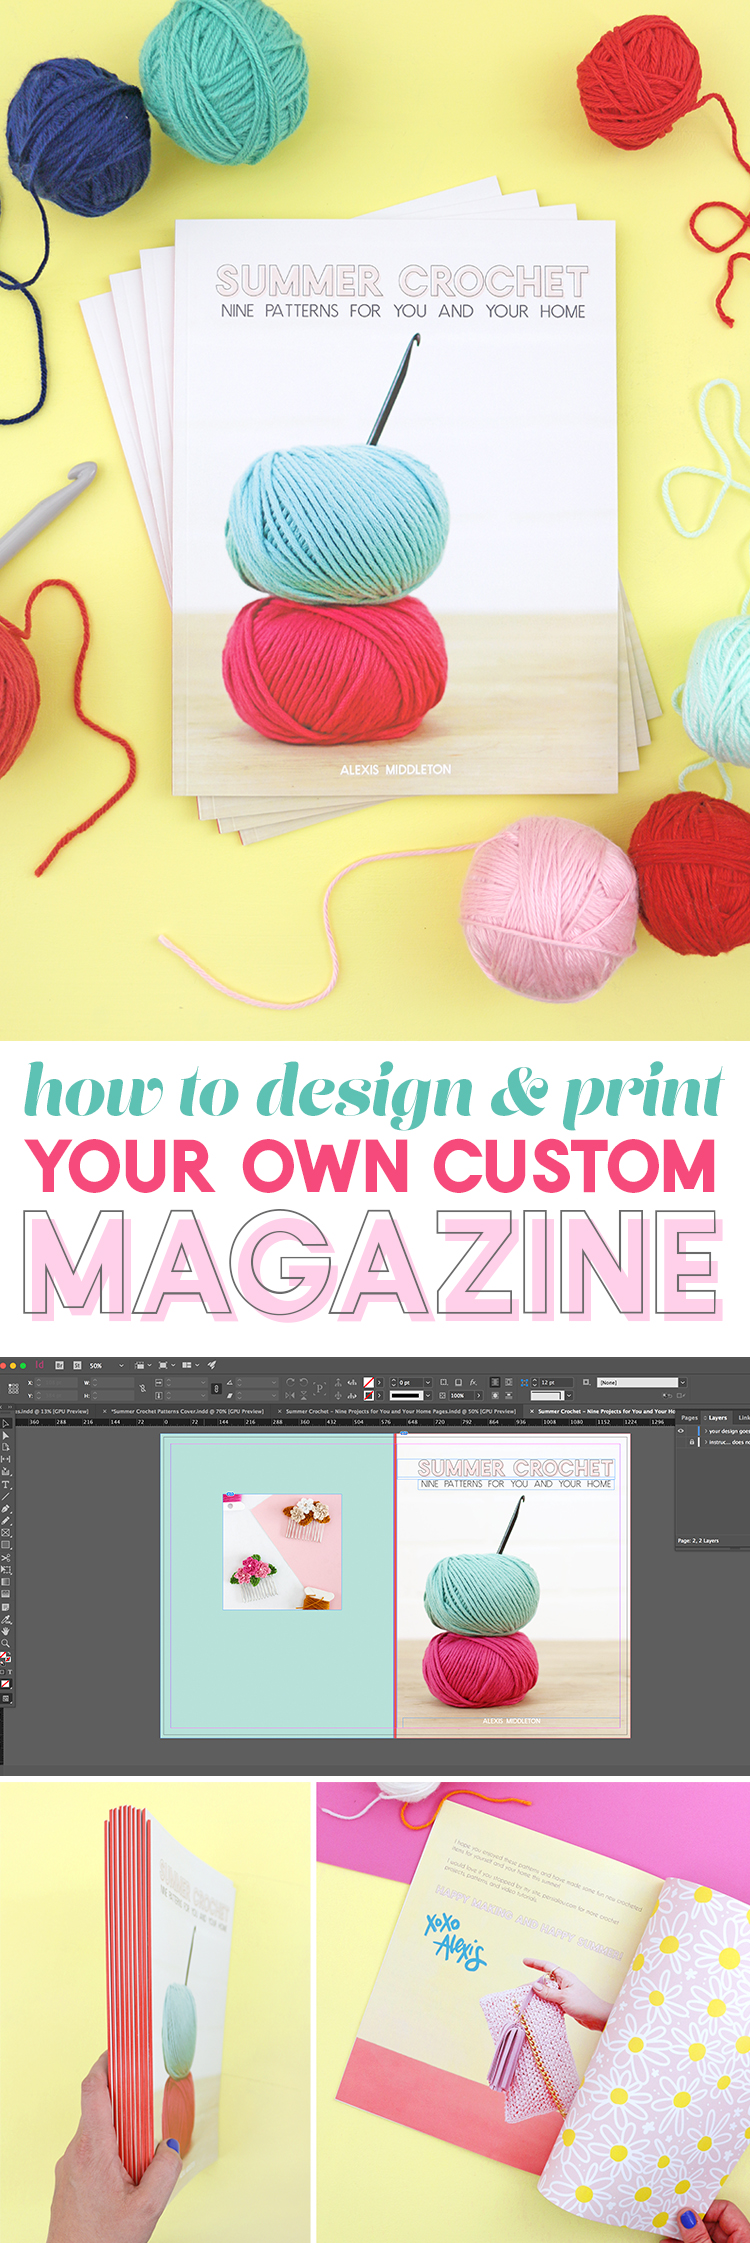 how to design and print your own custom magazine